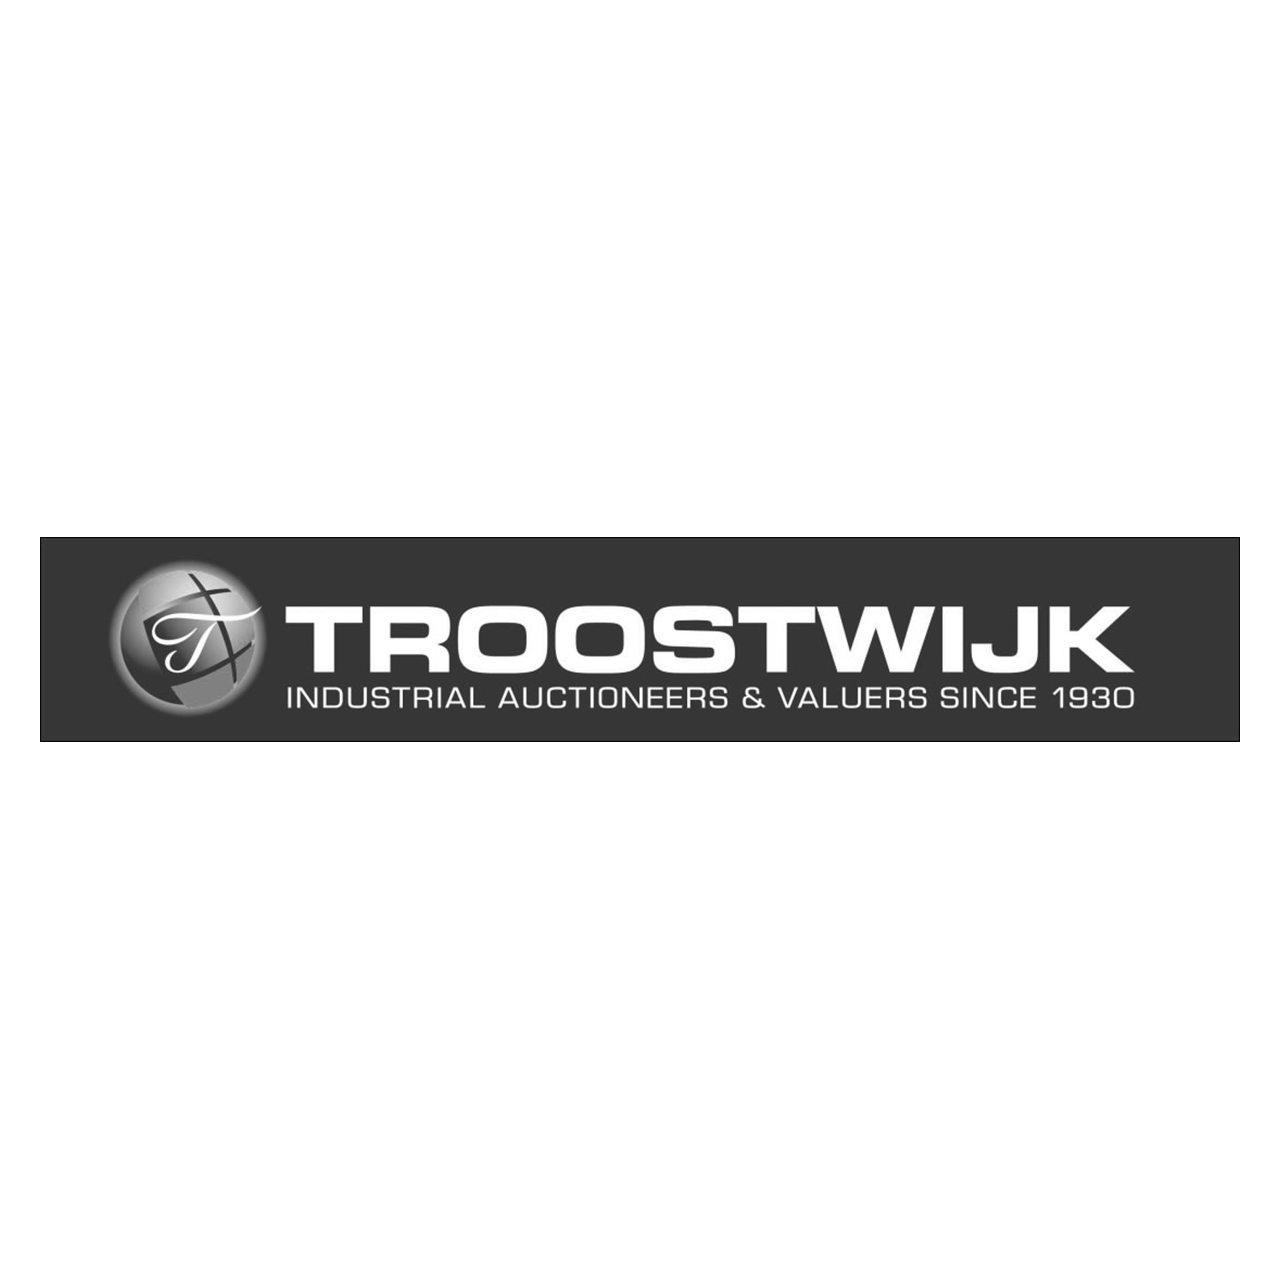 Logo Troostwijk, black & white